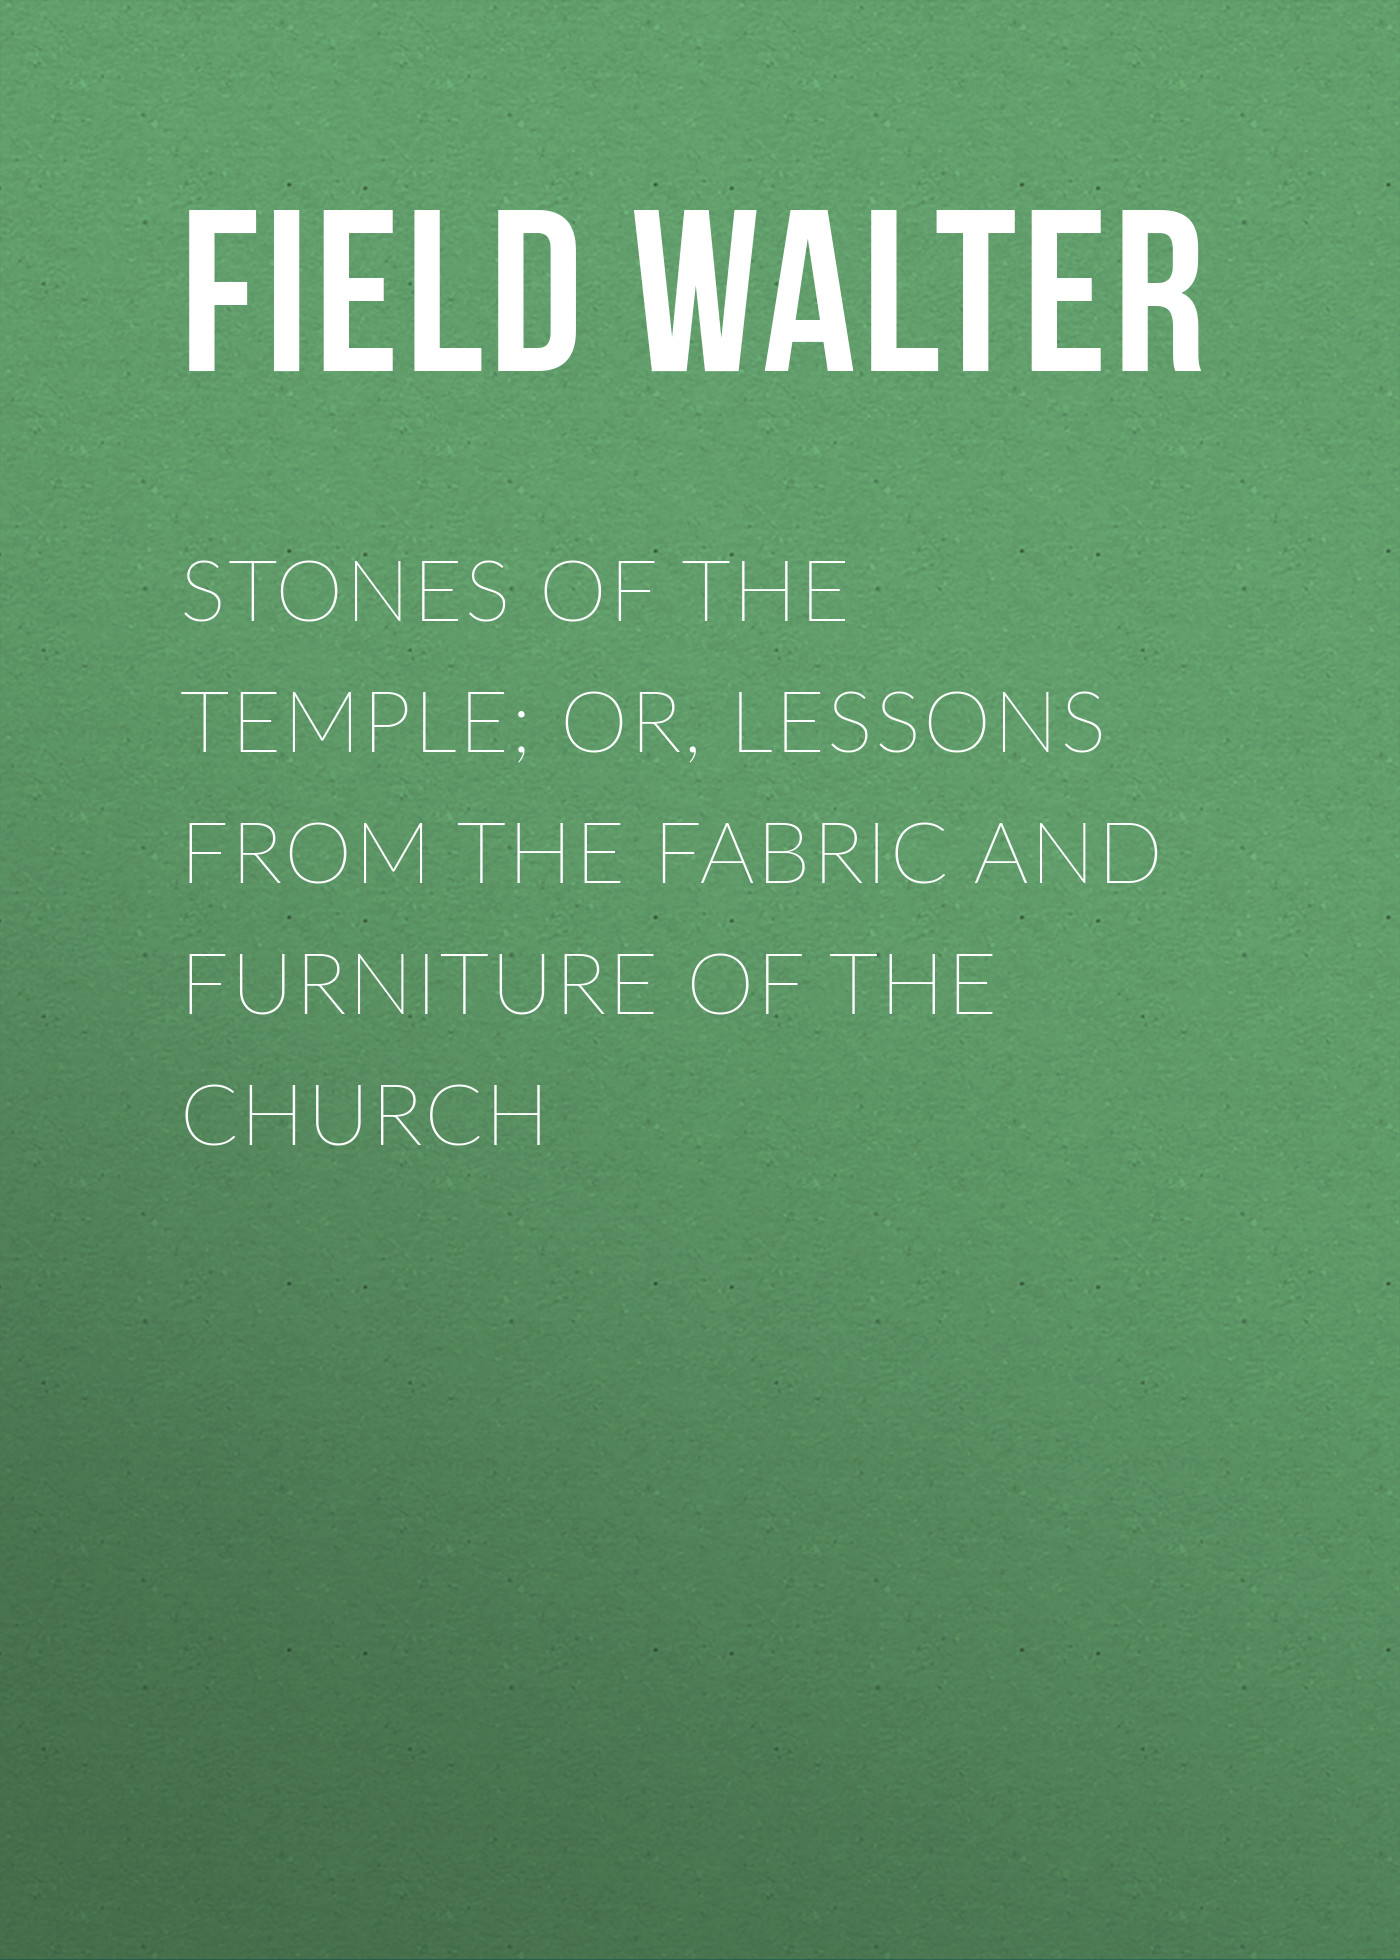 Field Walter Stones of the Temple; Or, Lessons from the Fabric and Furniture of the Church